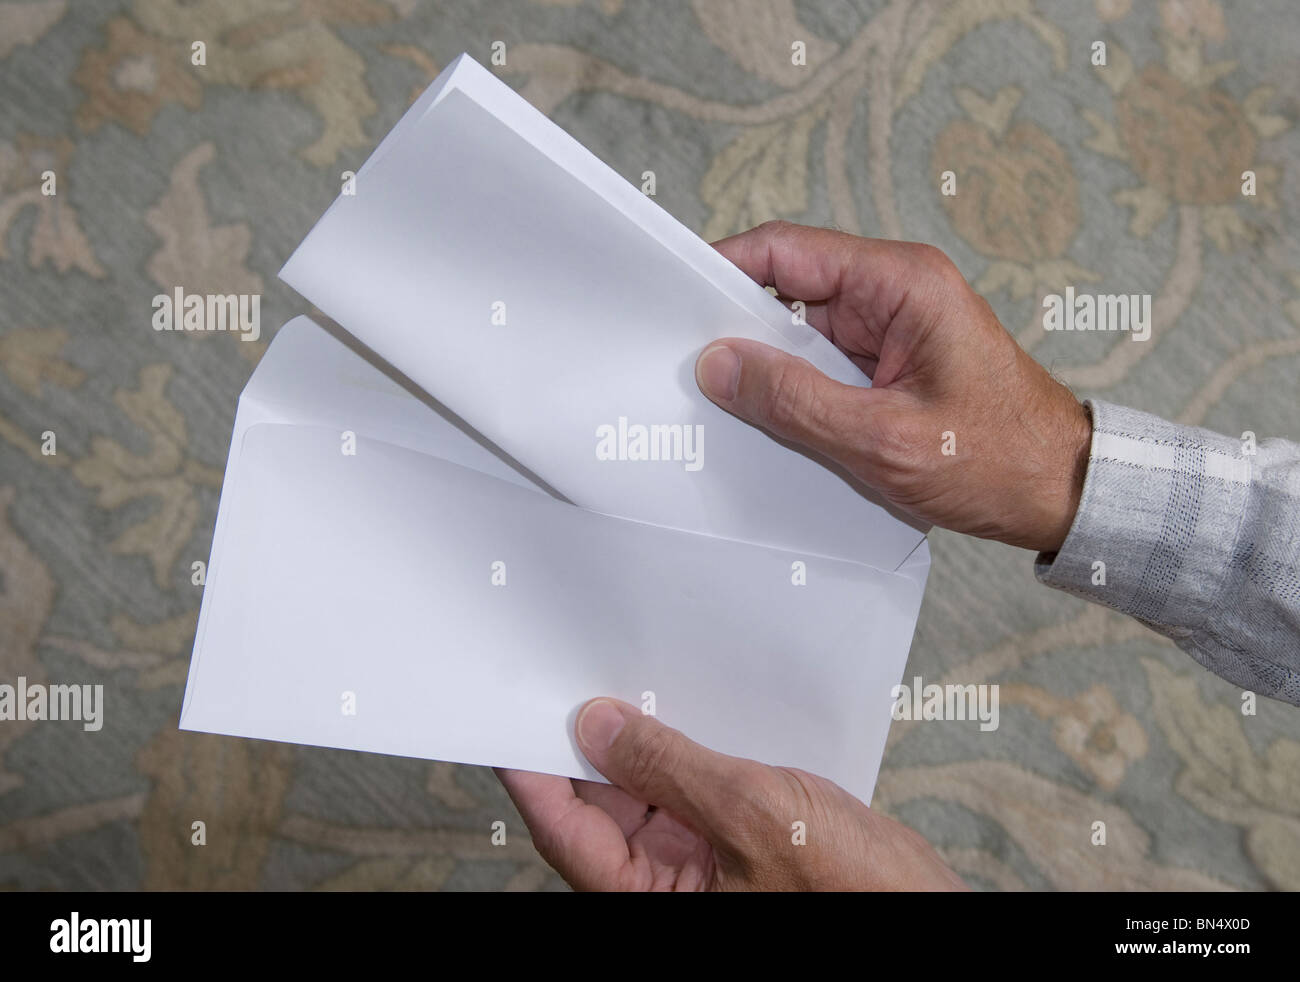 close-up of hands placing document in envelope - Stock Image